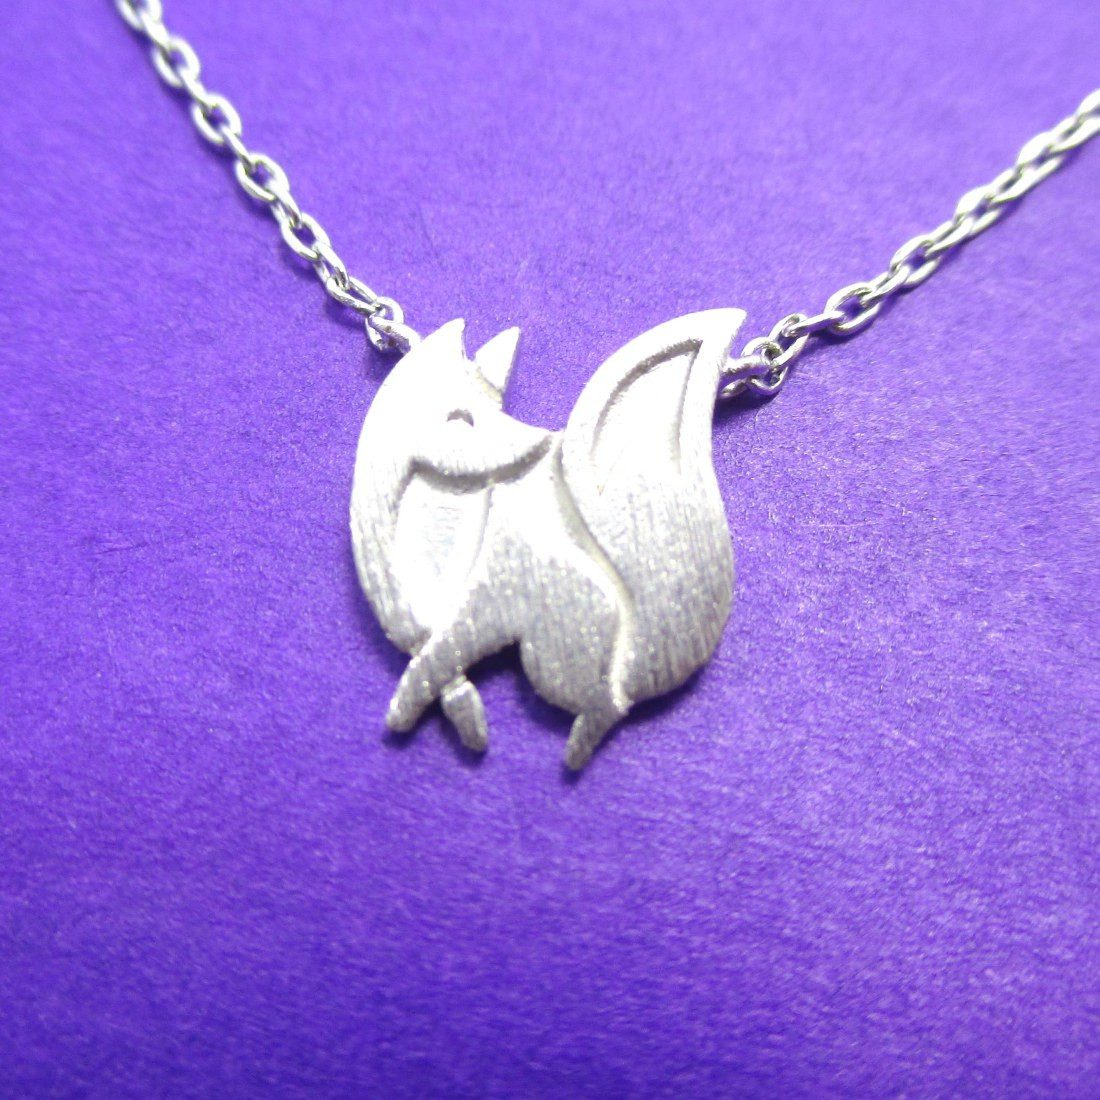 Baby Fox Shaped Silhouette Pendant Necklace in Silver